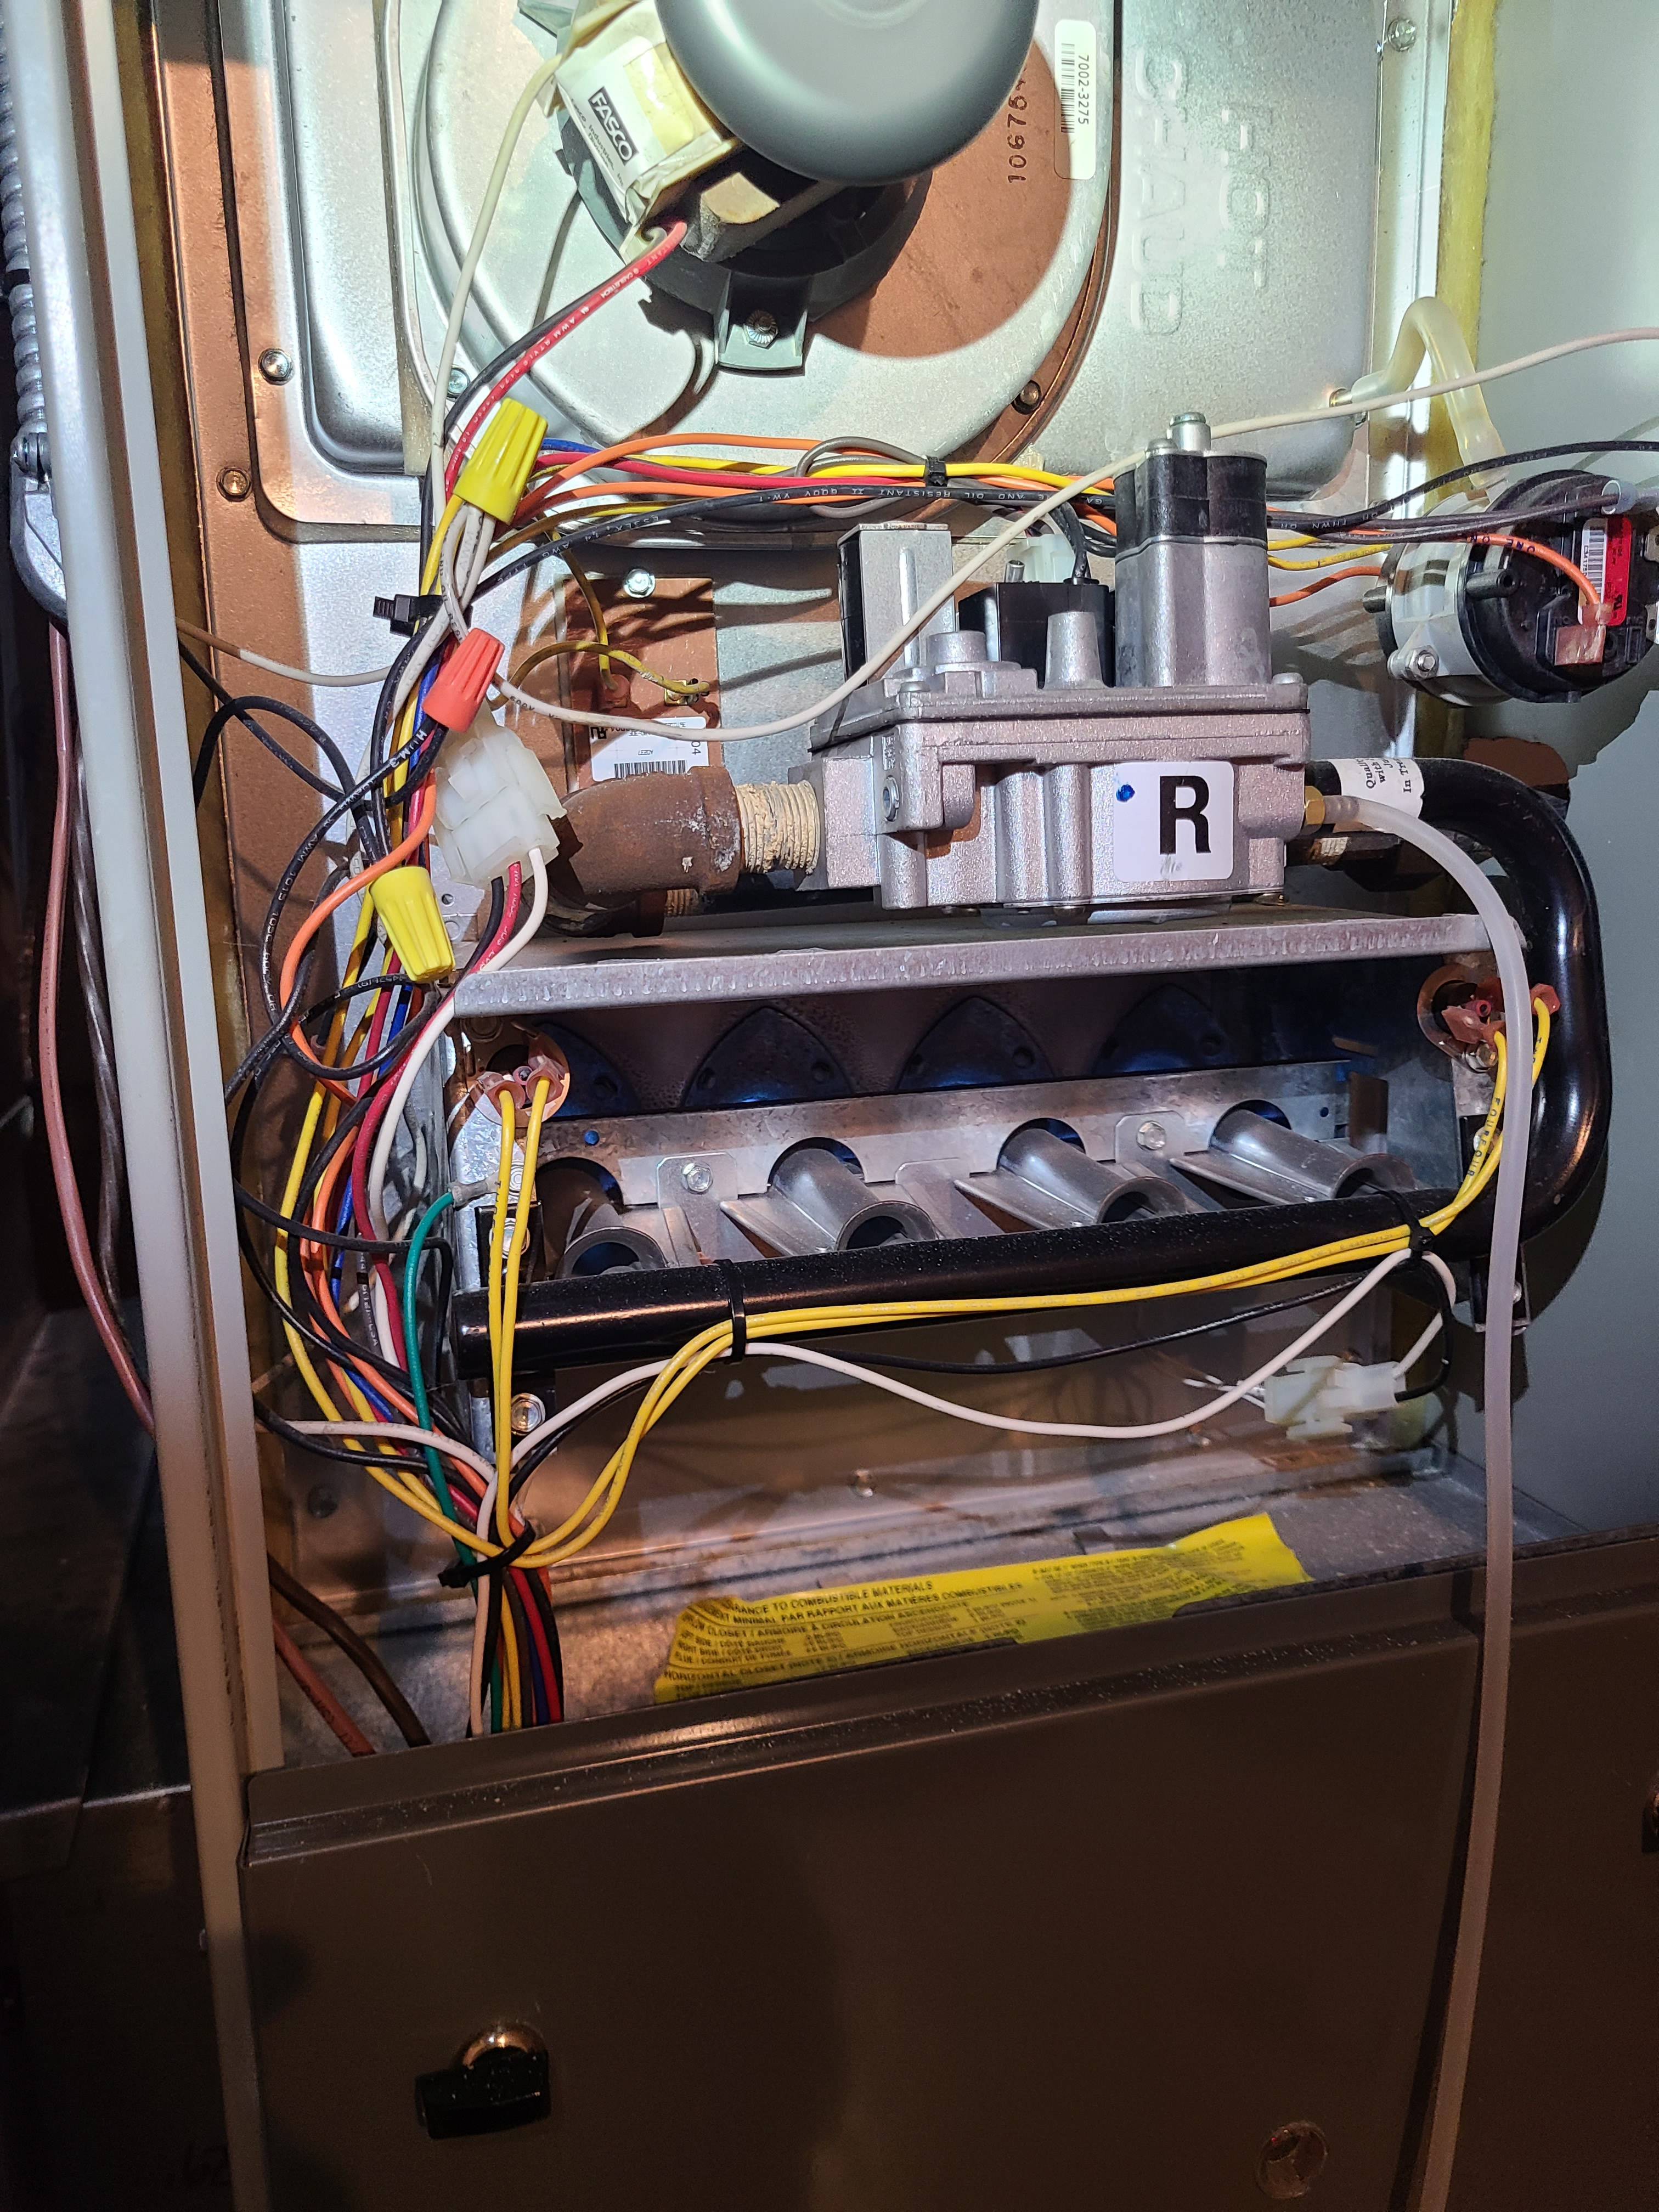 Trane 80%efficiency furnace cleaned and tested